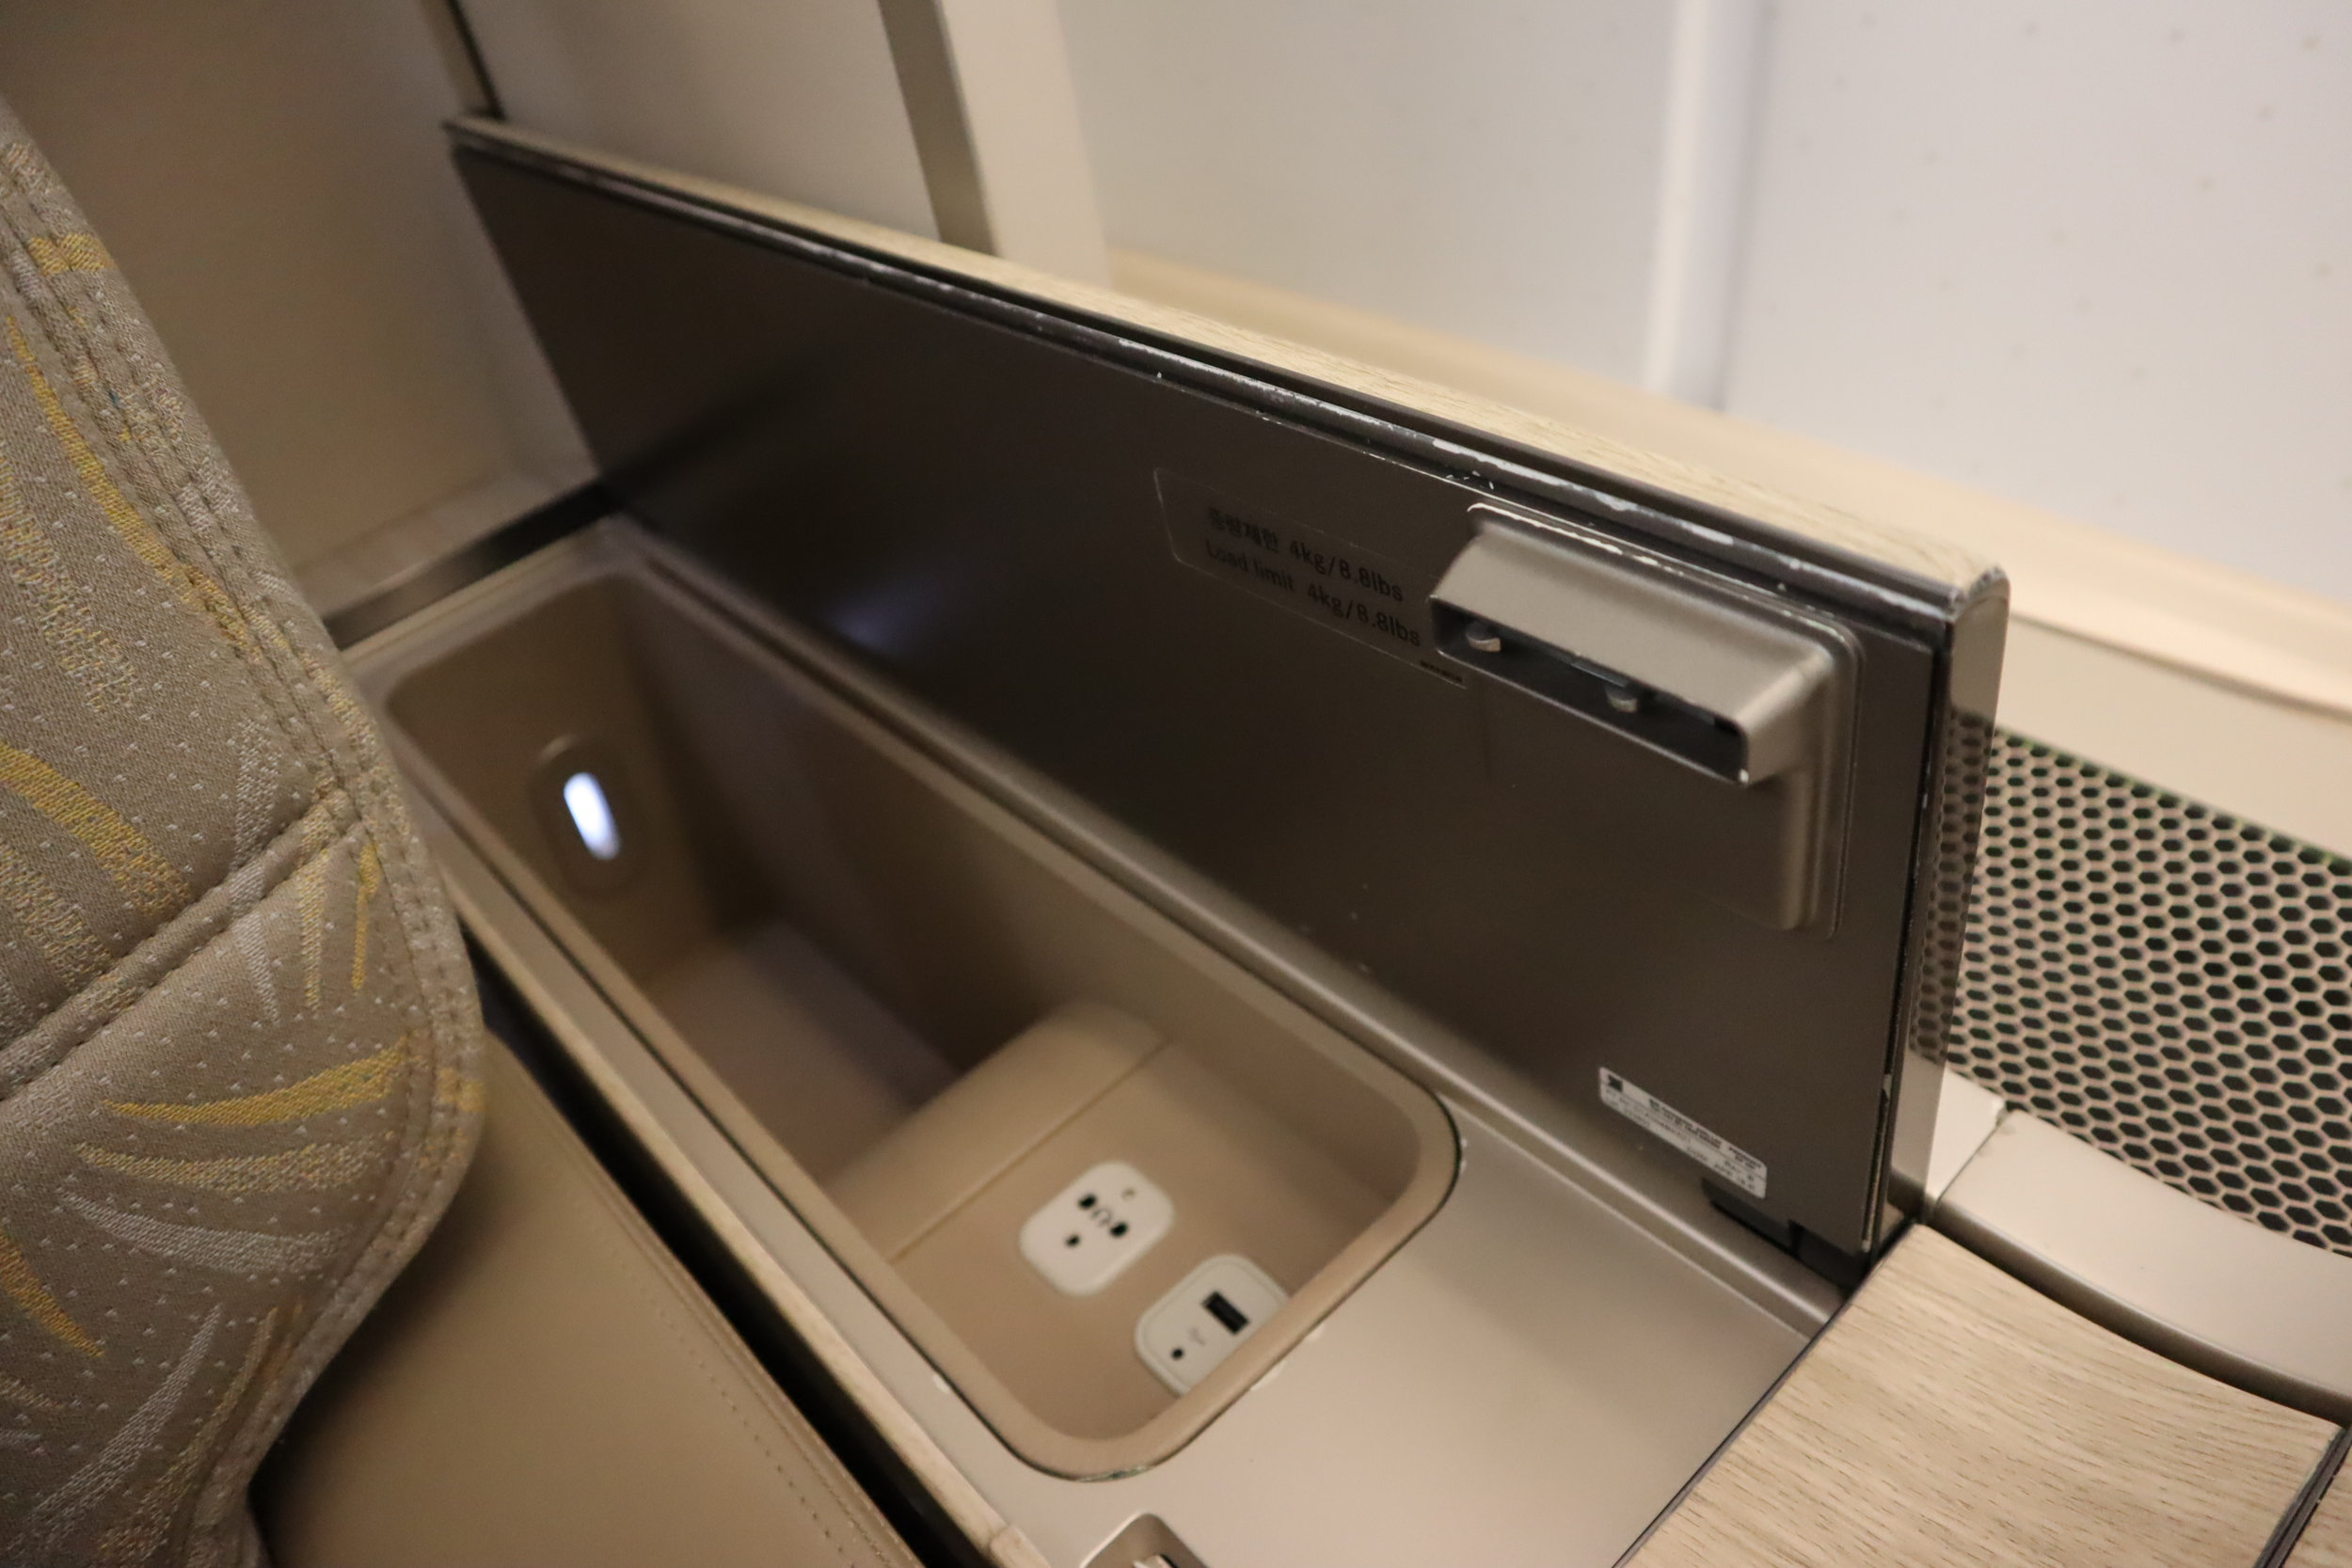 Asiana Airlines First Class – Storage compartment